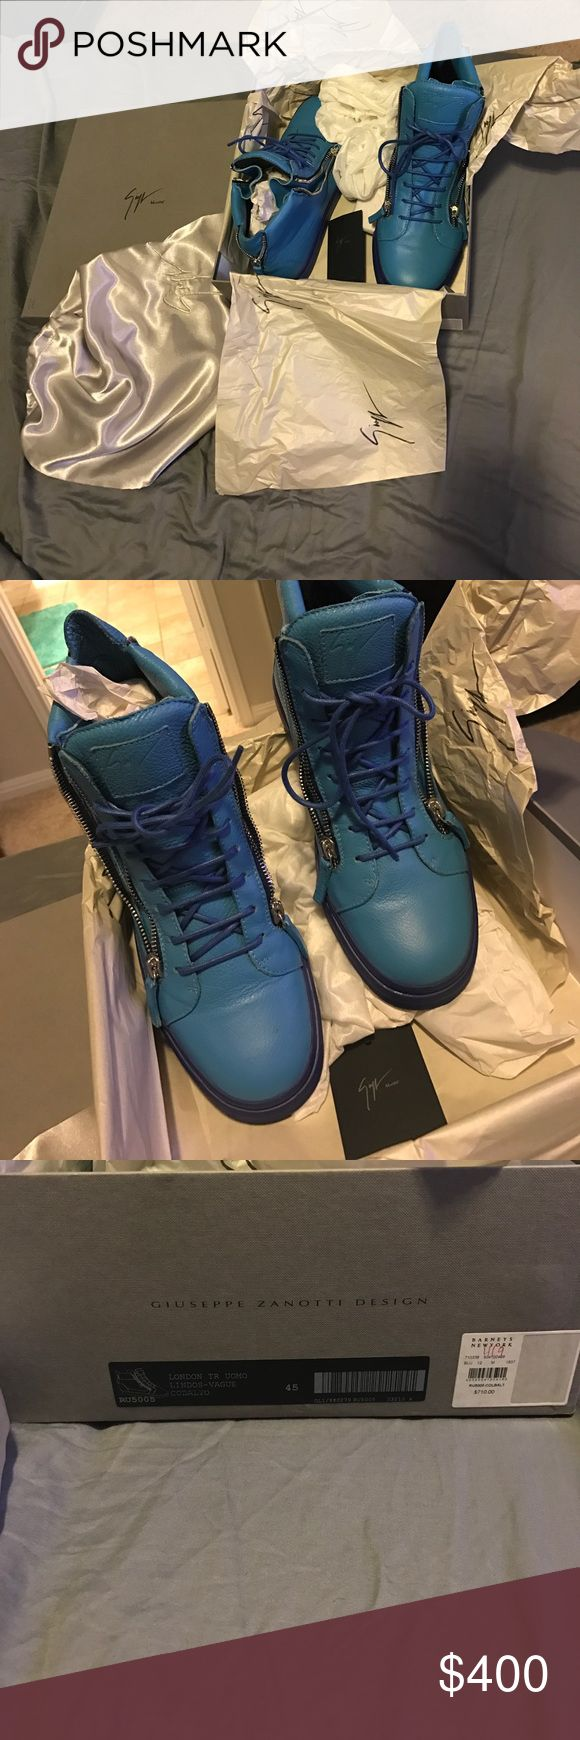 Men's Giuseppe Shoes I am selling a pair of gently used men's Giuseppe Zanotti shoes. They are authentic size 45. Comes with box and dust bags for each individual shoe. Giuseppe Zanotti Shoes